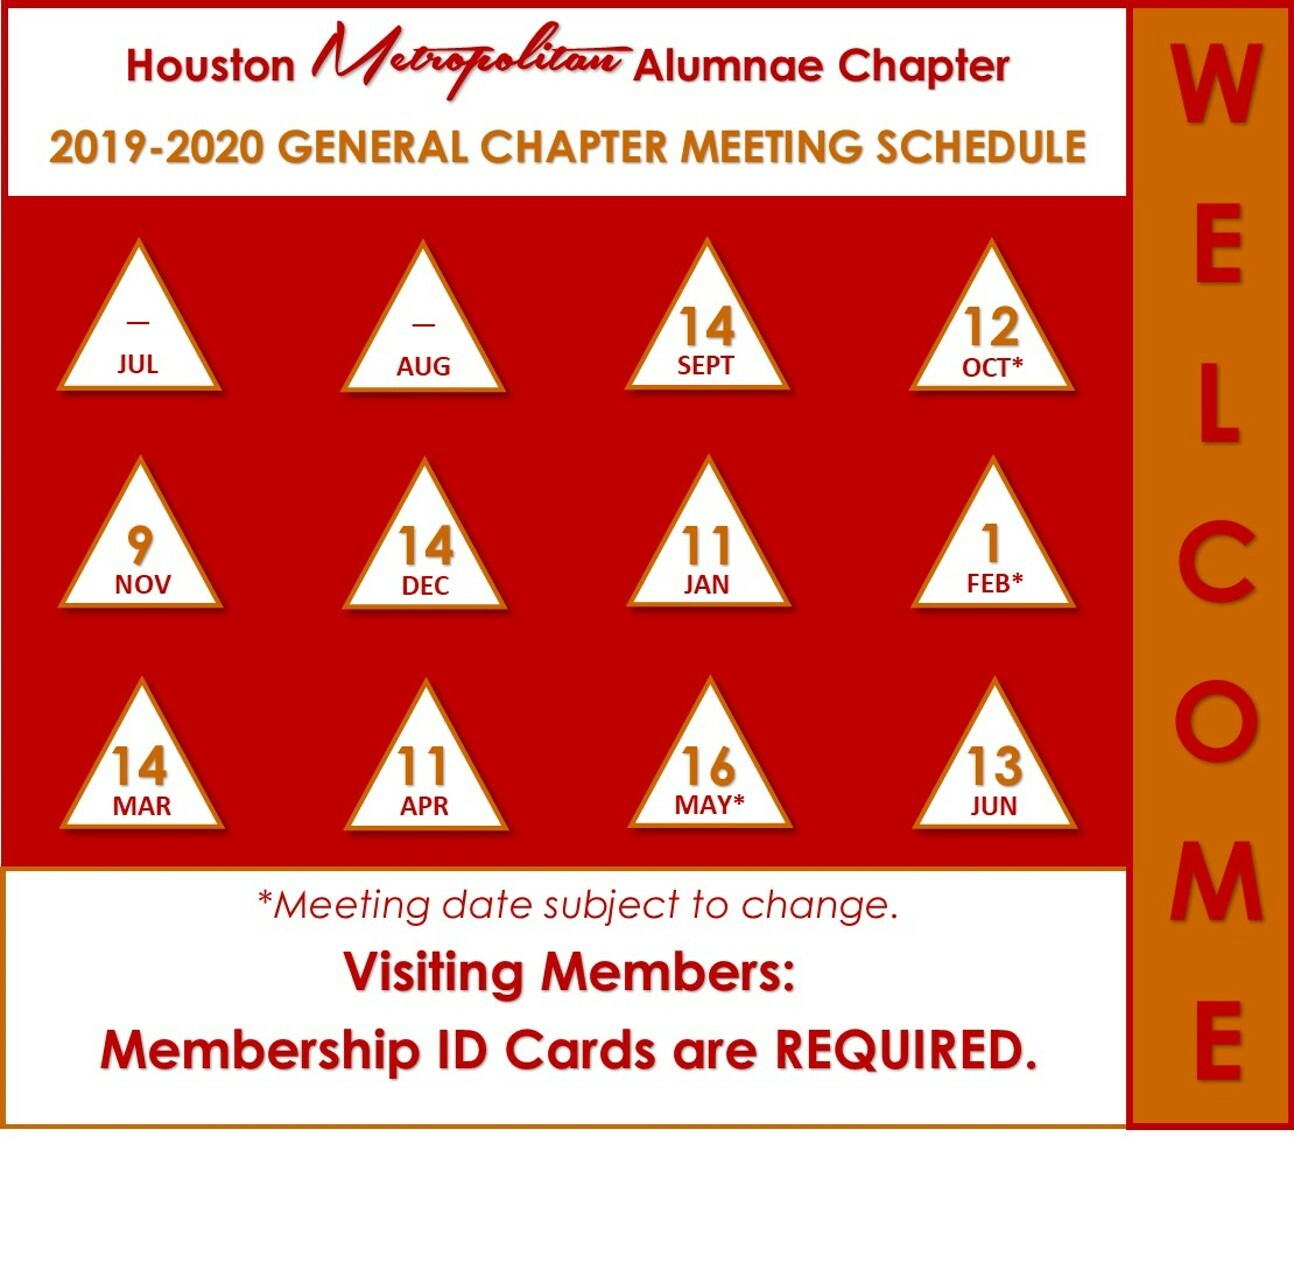 General Chapter Meetings 2019-2020